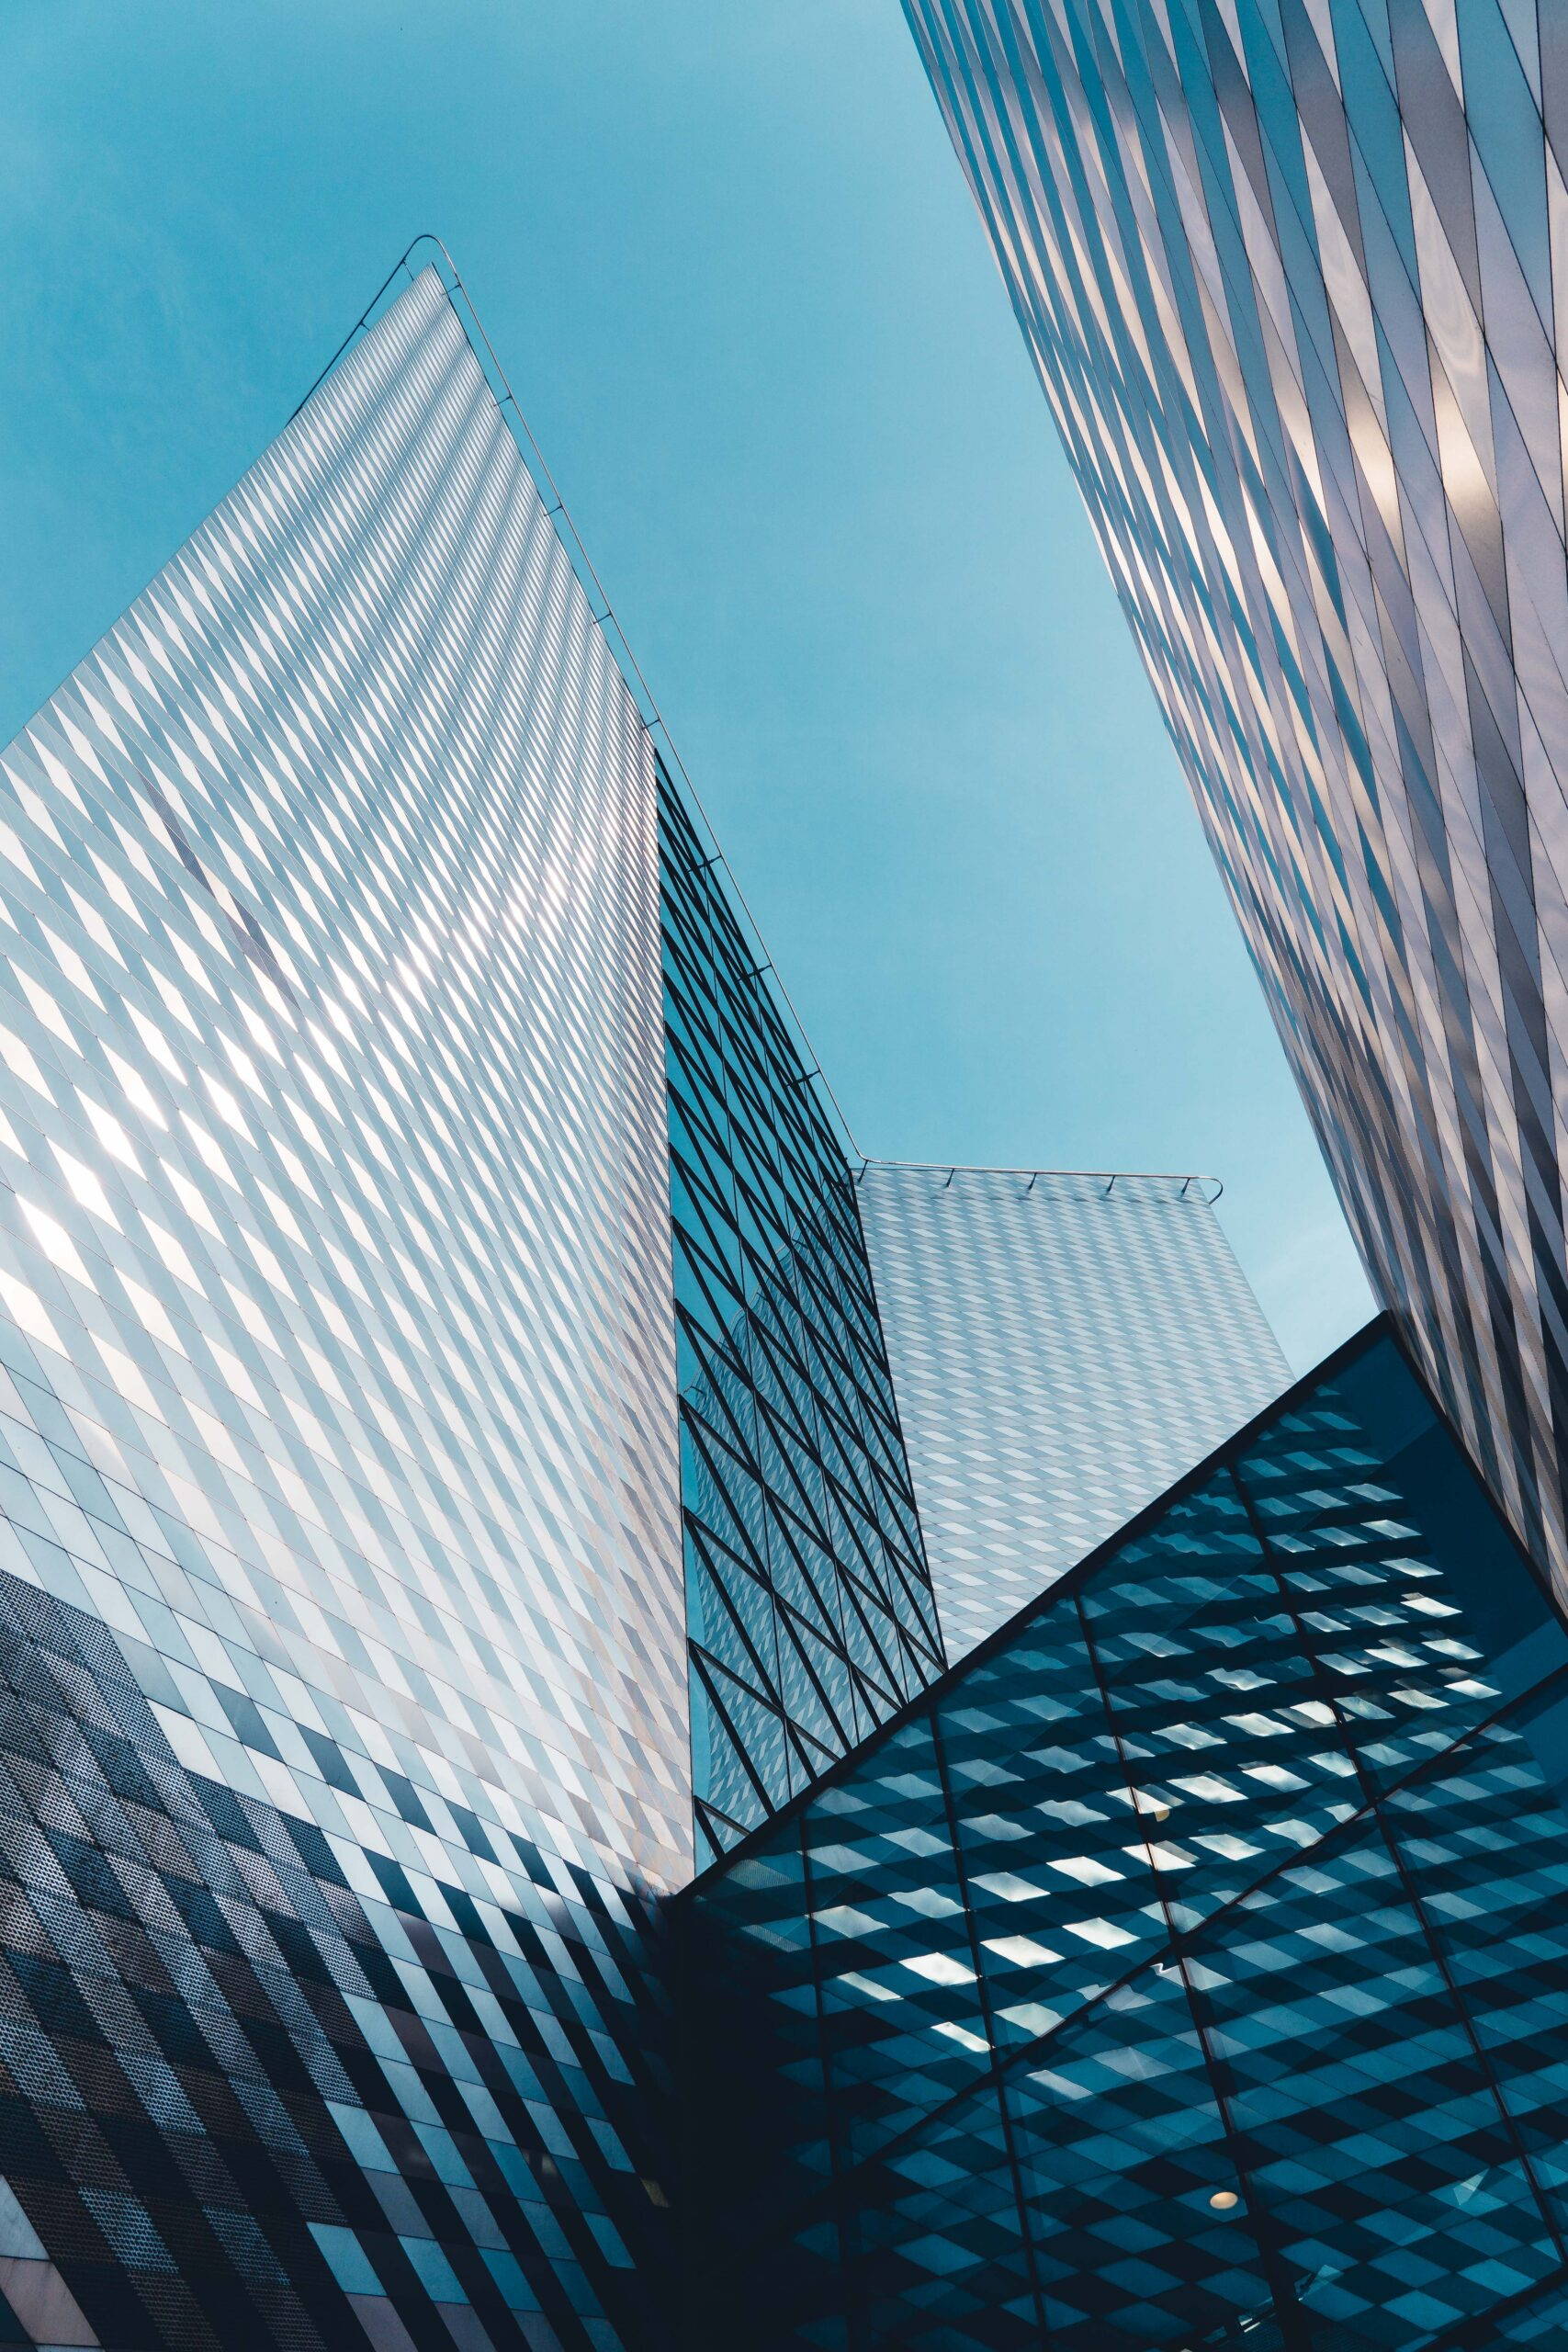 Abstract skyscrapers